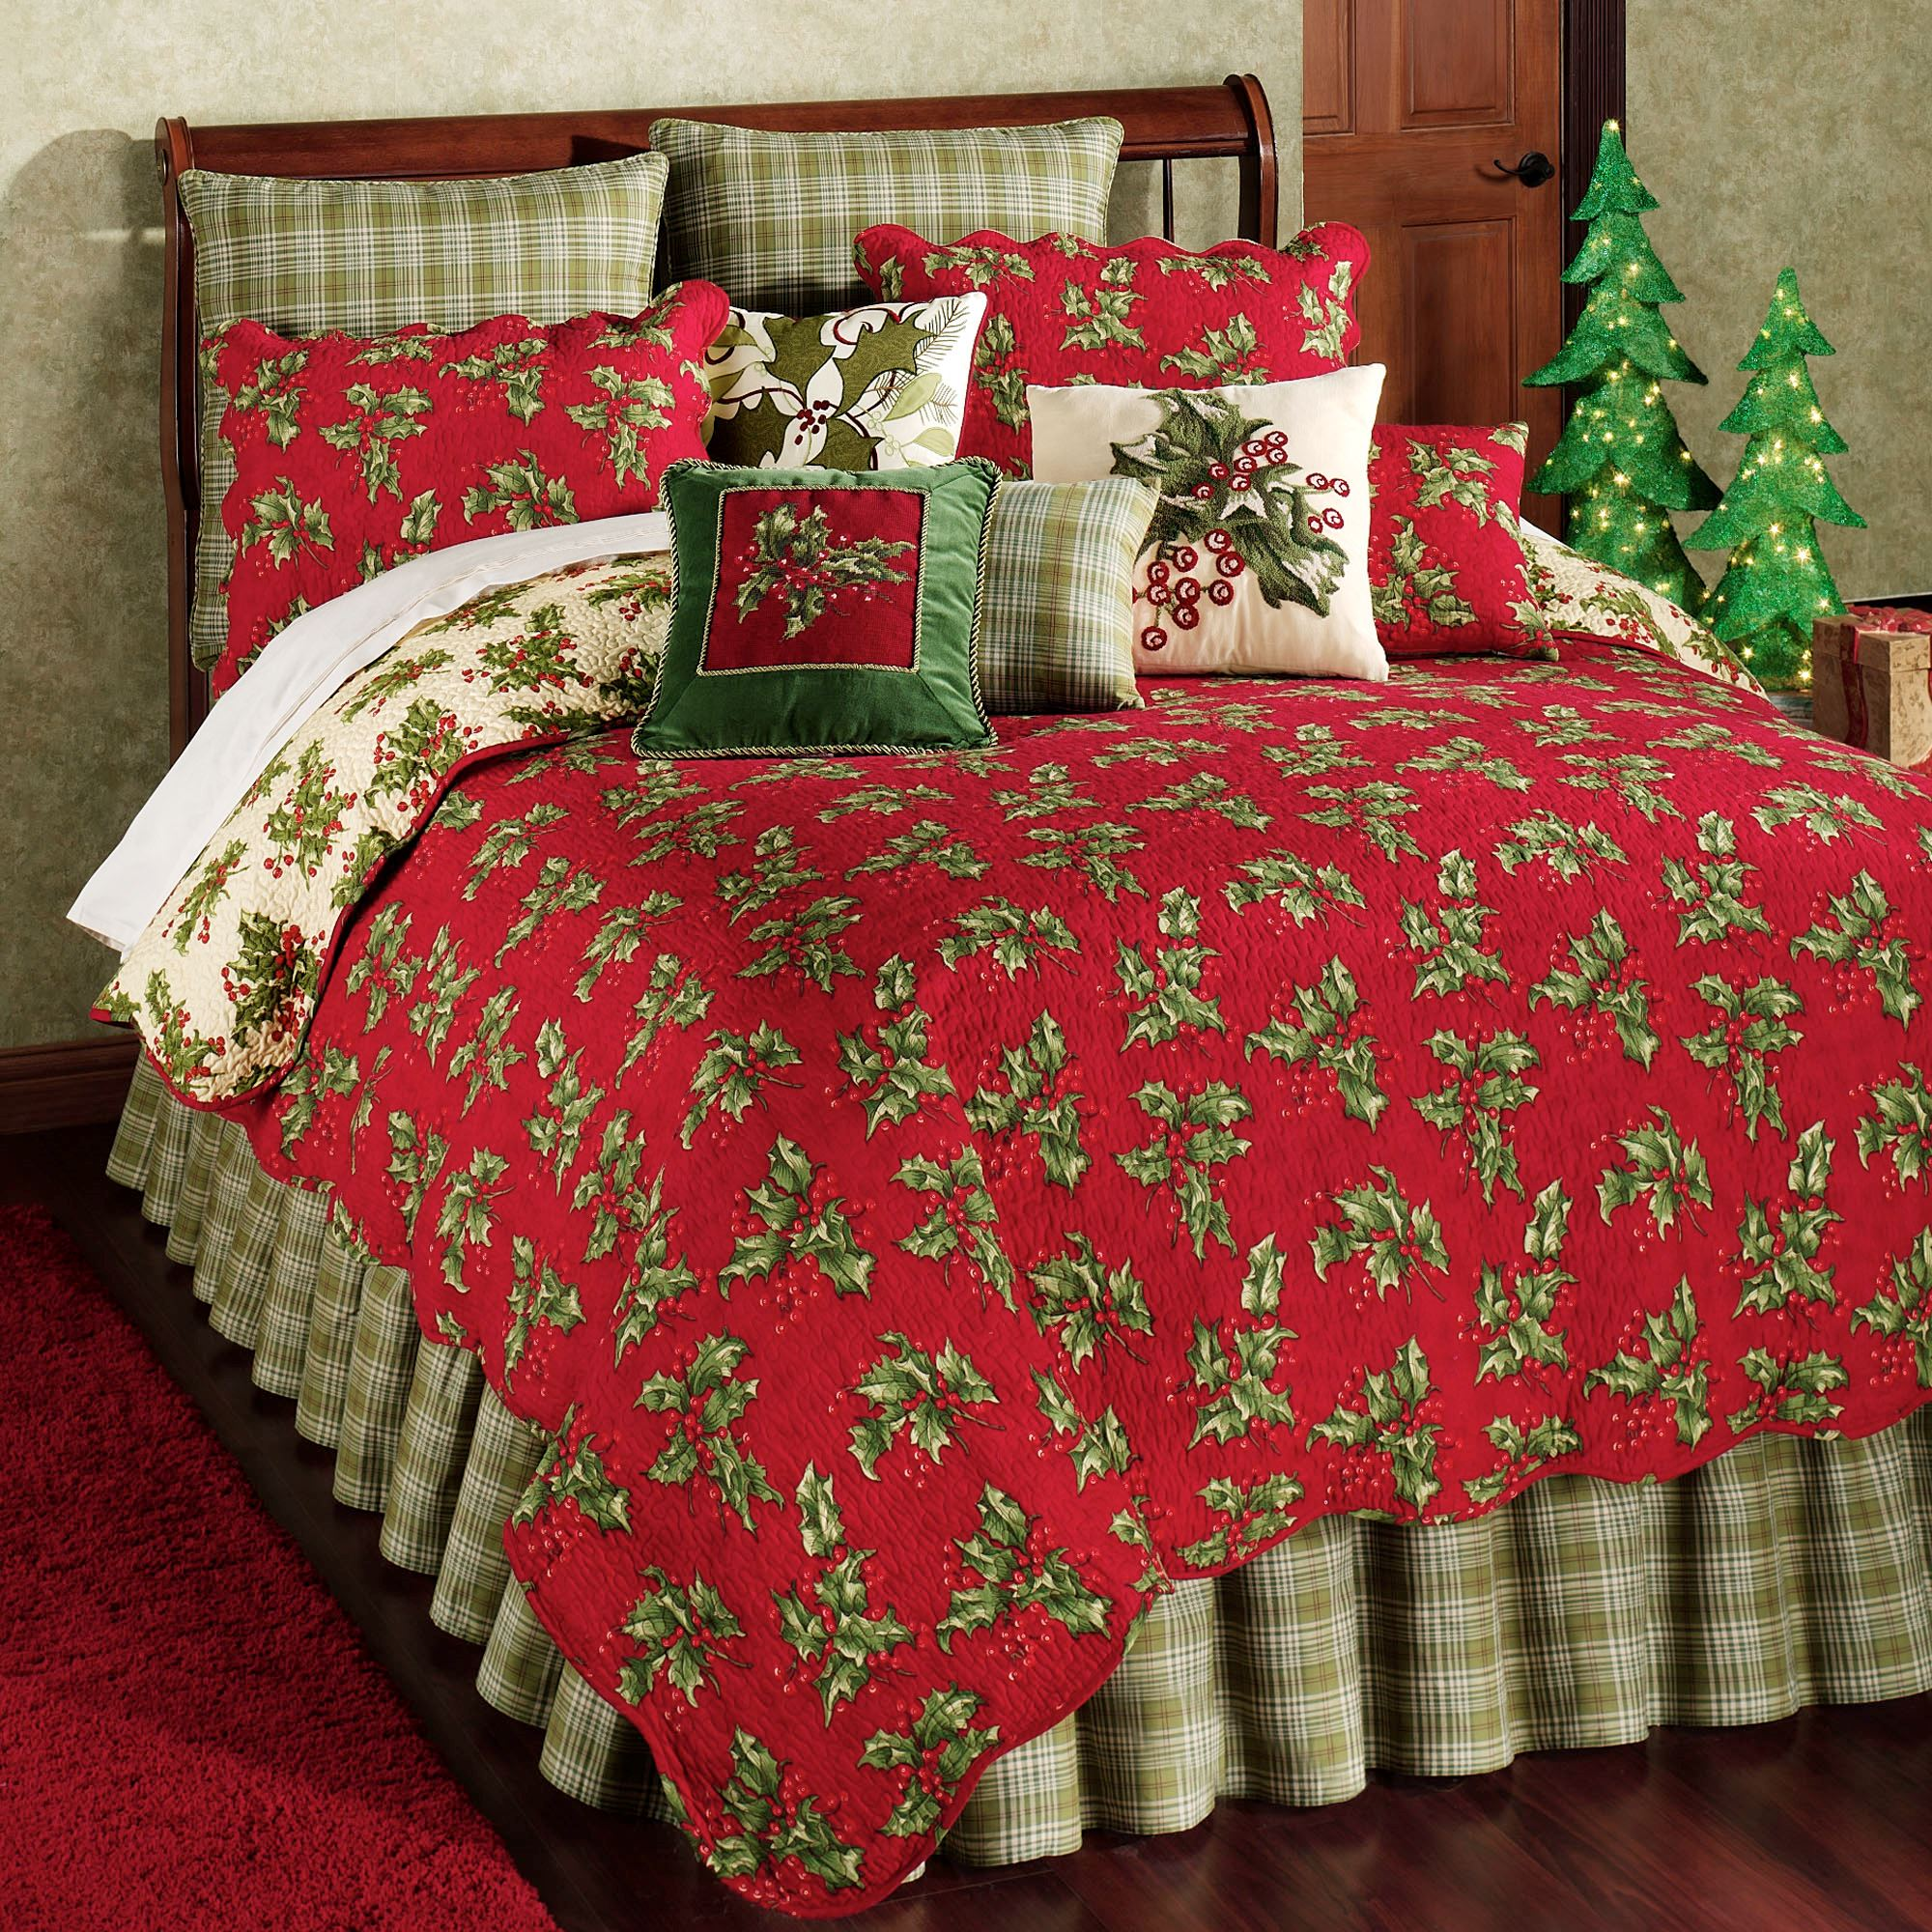 Holly Red Holiday Quilt Bedding : holiday bedding quilts - Adamdwight.com